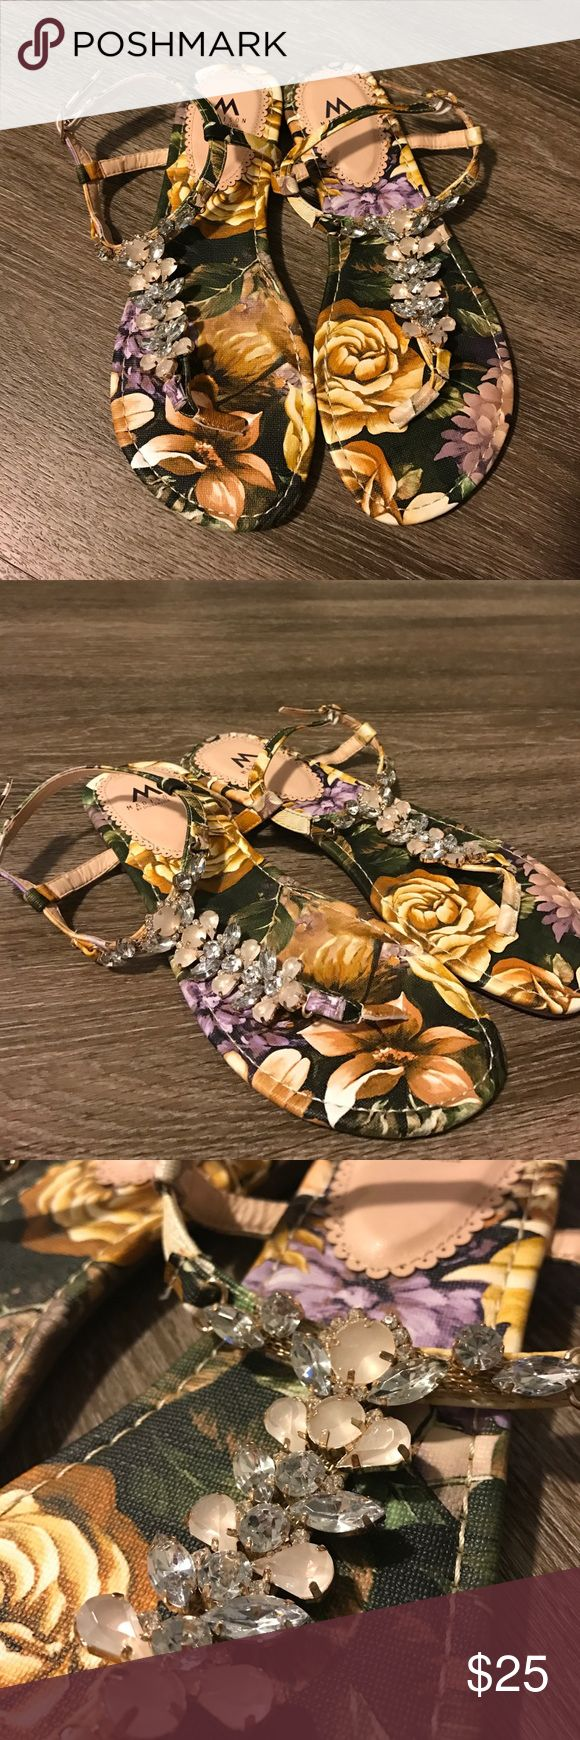 Madison by Shoe dazzle floral jewel sandals Floral pattern with embellished jewels on t-strap. Perfect for bridal sandals or just for dressing up a simple outfit! Size 7.5 Shoe Dazzle Shoes Sandals